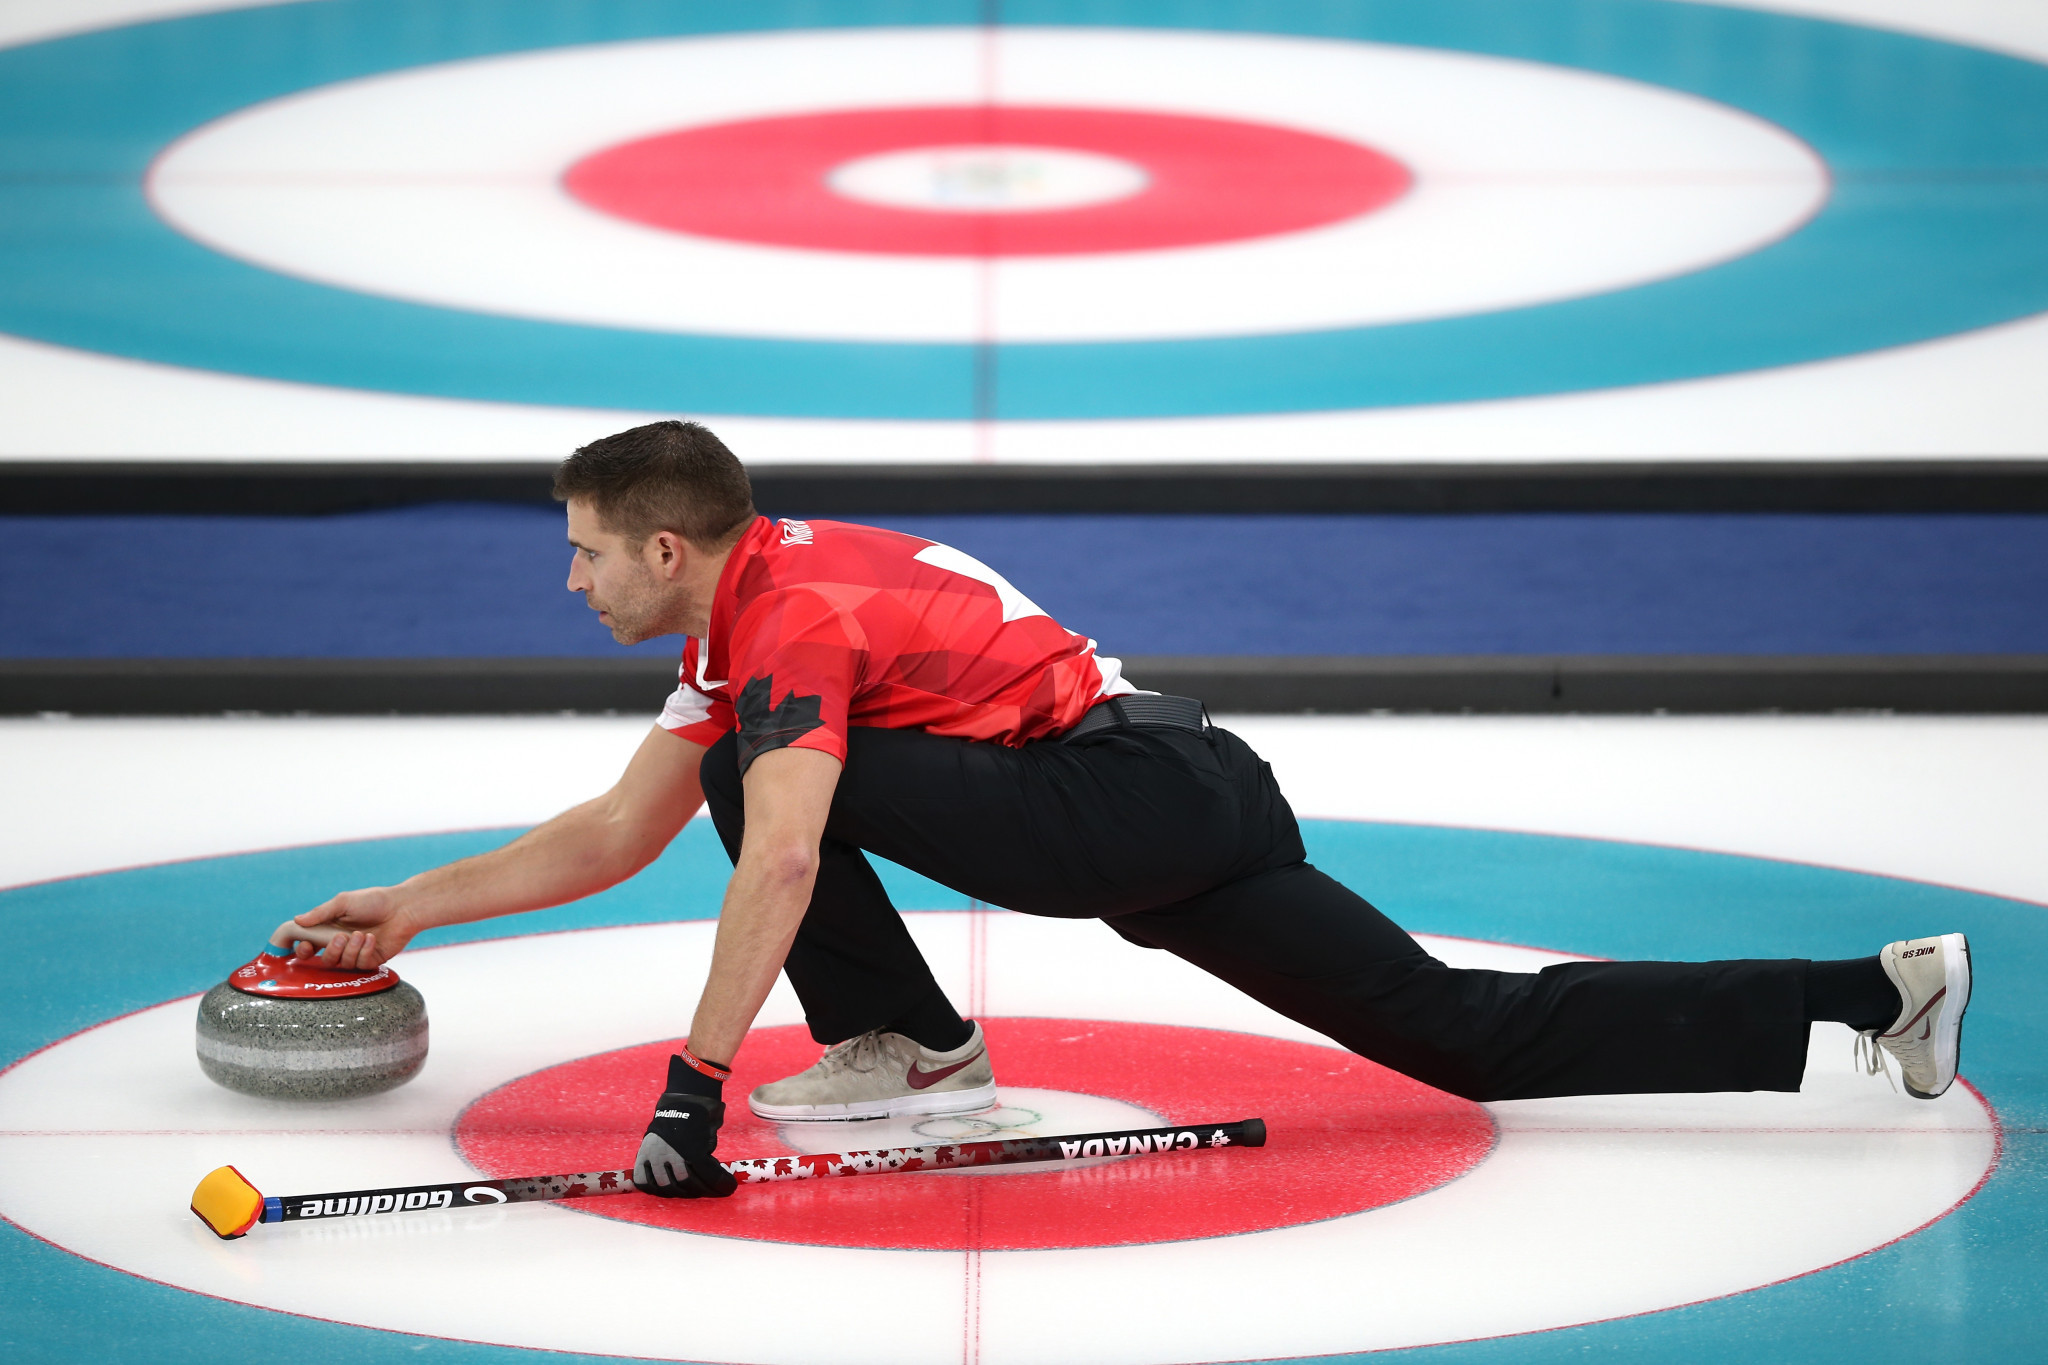 Morris urges Curling Canada to change Olympic eligibility rules